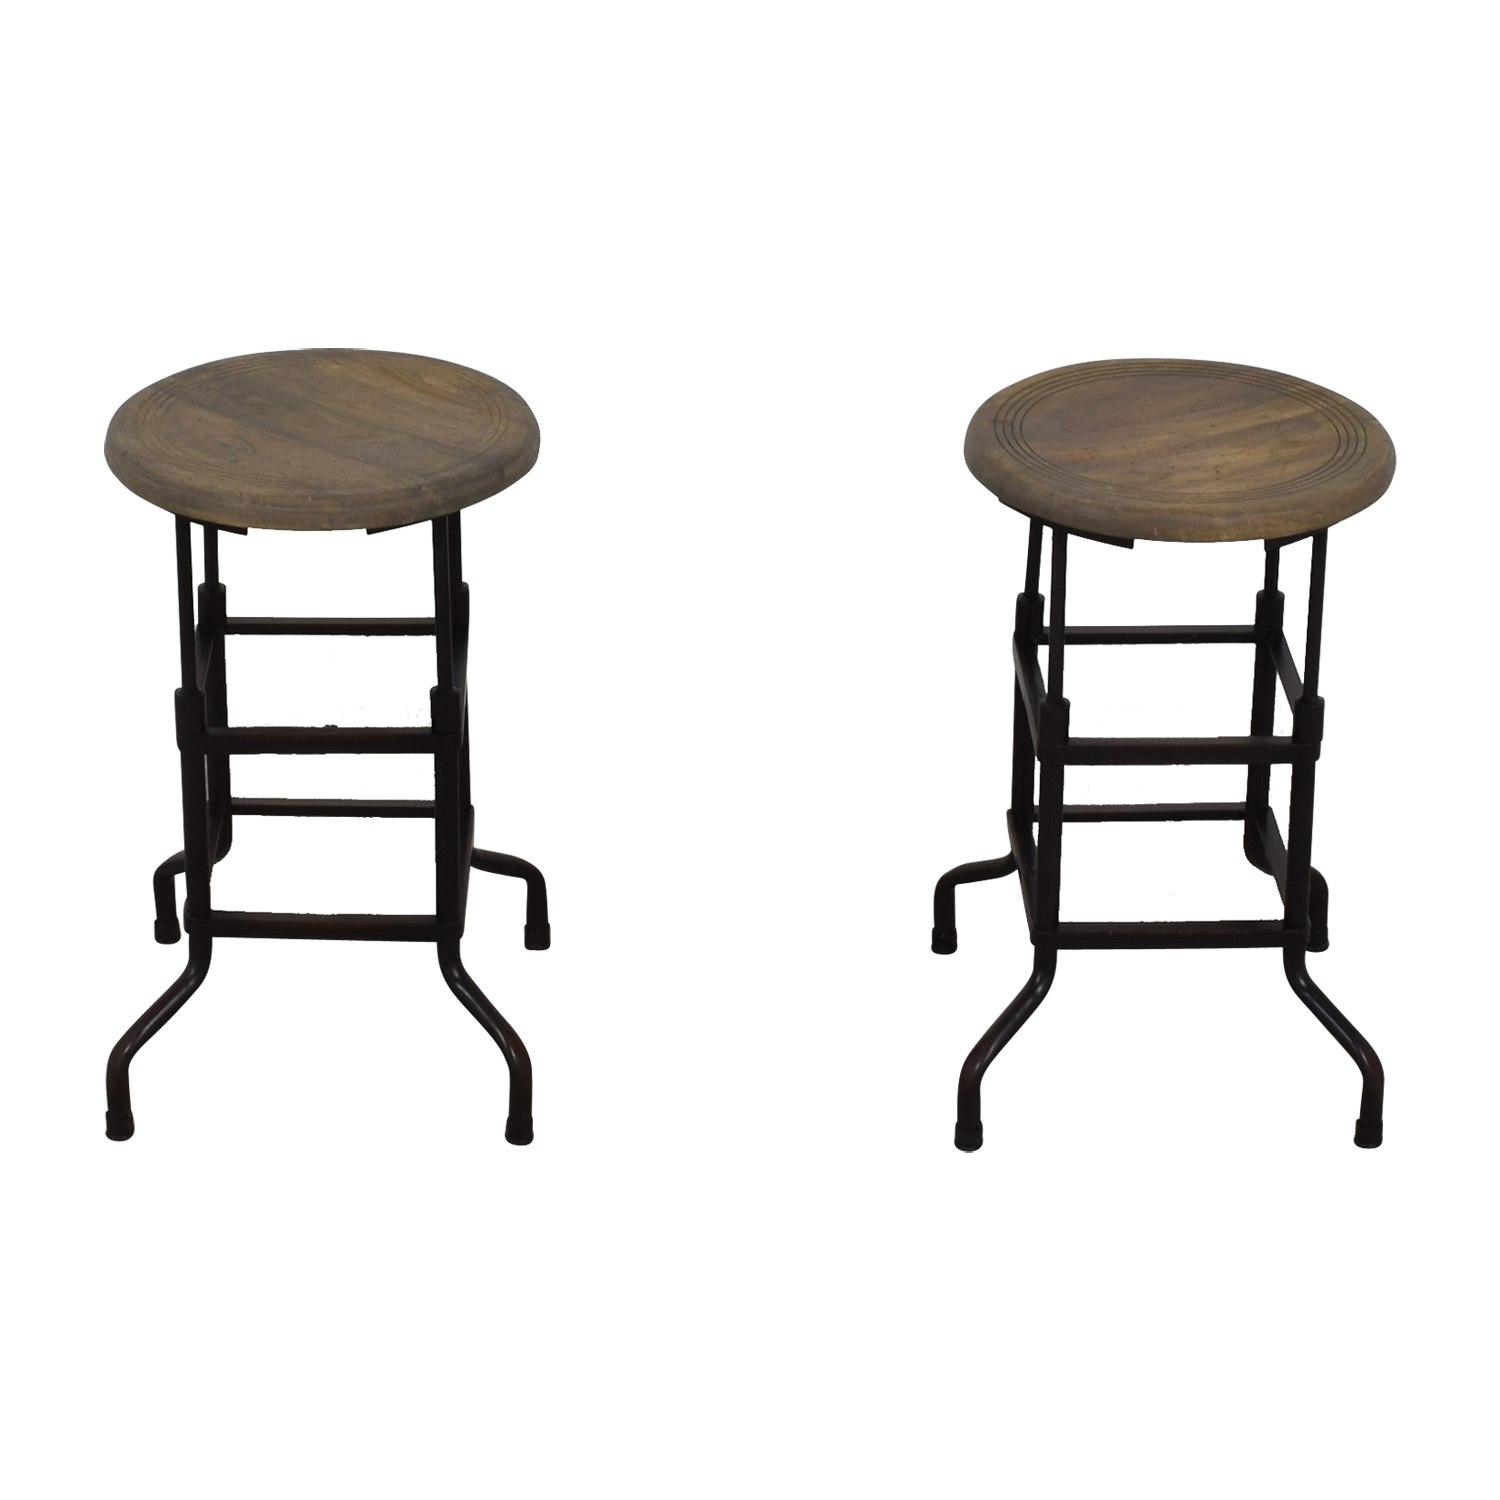 Fabulous 69 Off Restoration Hardware Restoration Hardware 1920S American Factory Stools Chairs Gamerscity Chair Design For Home Gamerscityorg